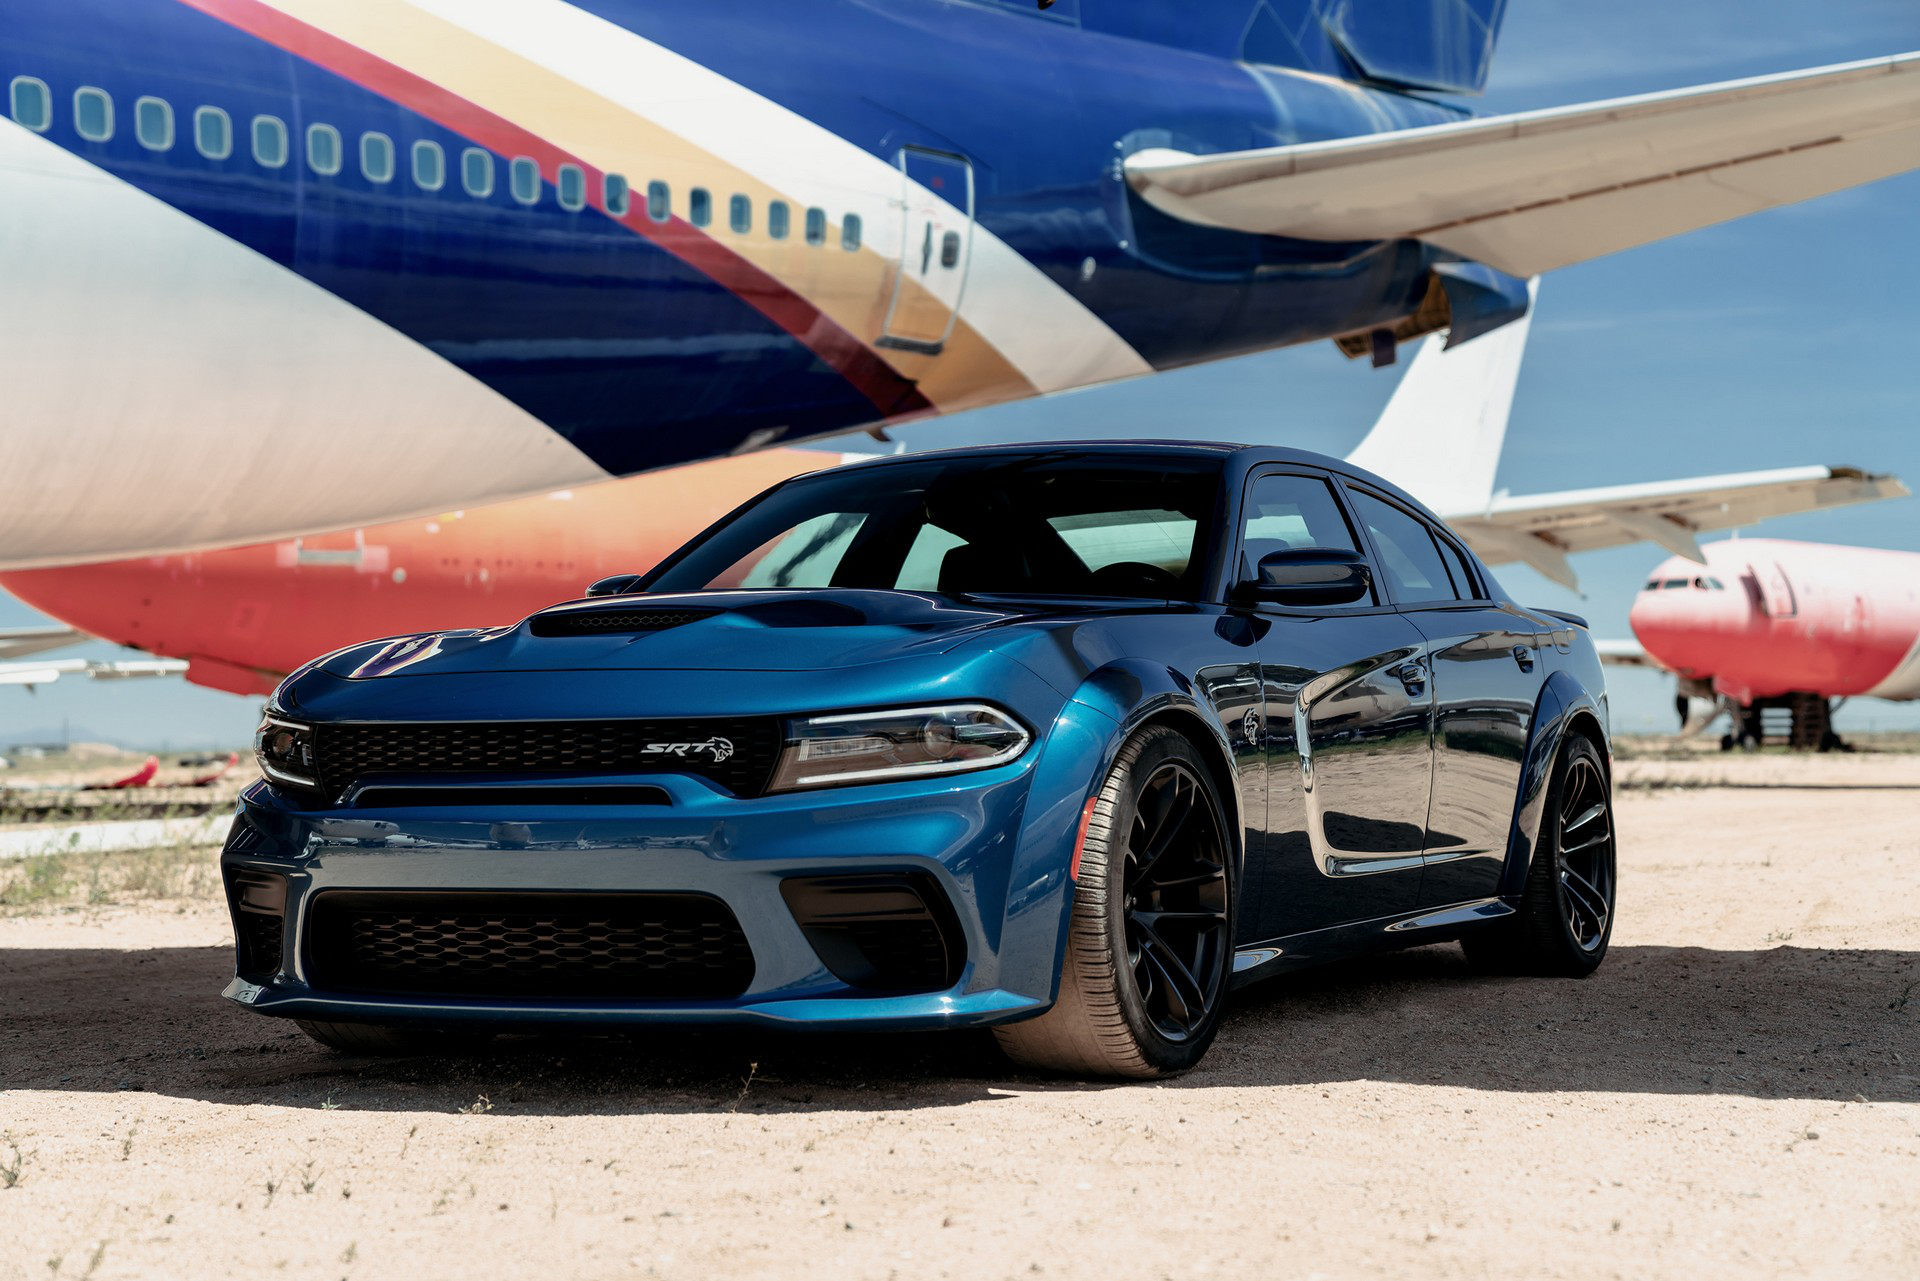 2020 Dodge Charger Scat Pack And Srt Hellcat Widebody Debut With Up To 707 Hp Carmojo The Charger Charger Srt Hellcat Dodge Charger Hellcat Dodge Charger